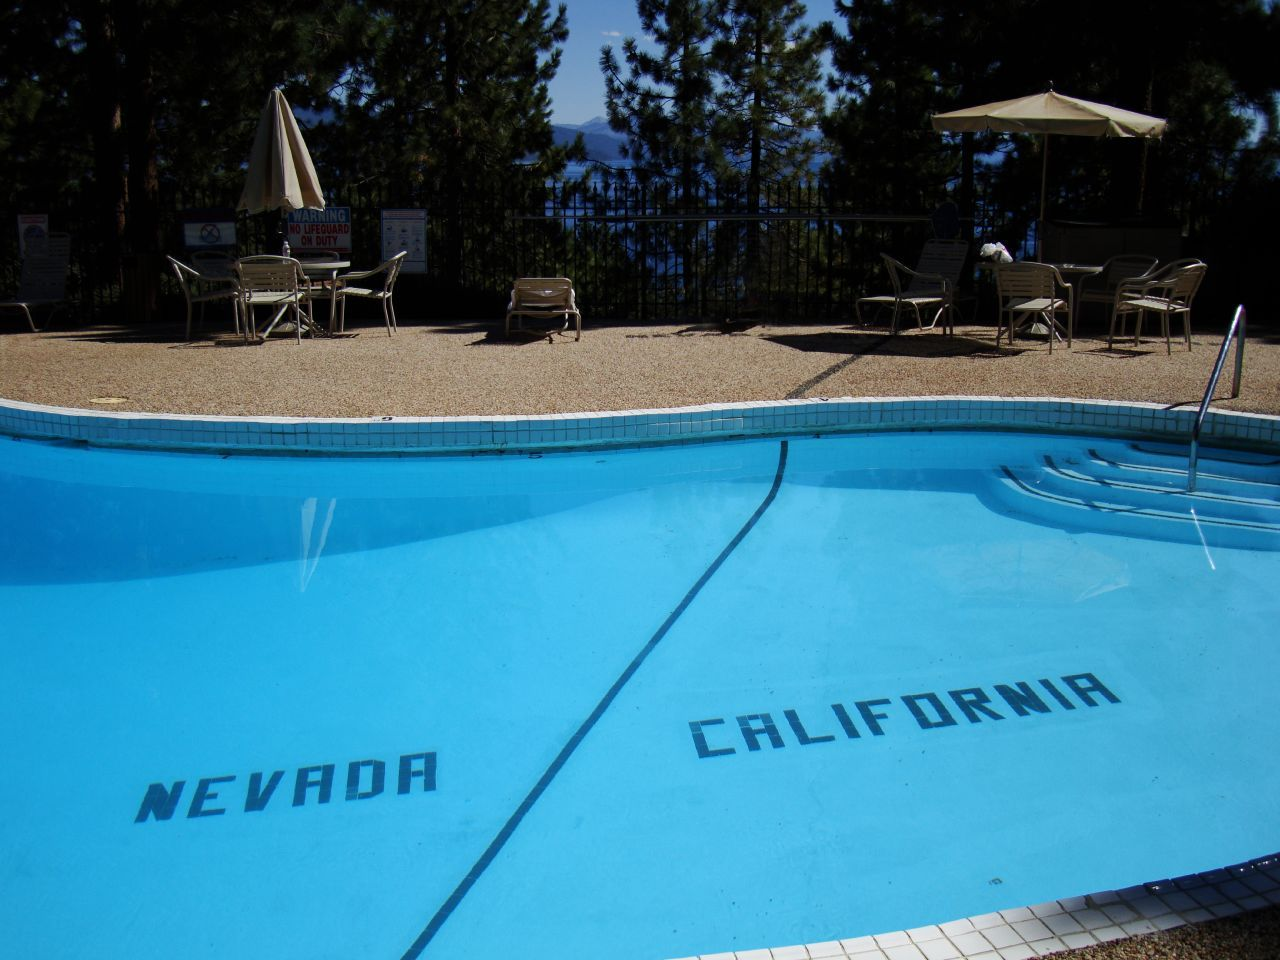 coachtorts:  At the Cal-Neva Lodge in Lake Tahoe, the Nevada/California state line actually runs through the swimming pool. Fun fact:  Cal-Neva was once co-owned by Frank Sinatra.